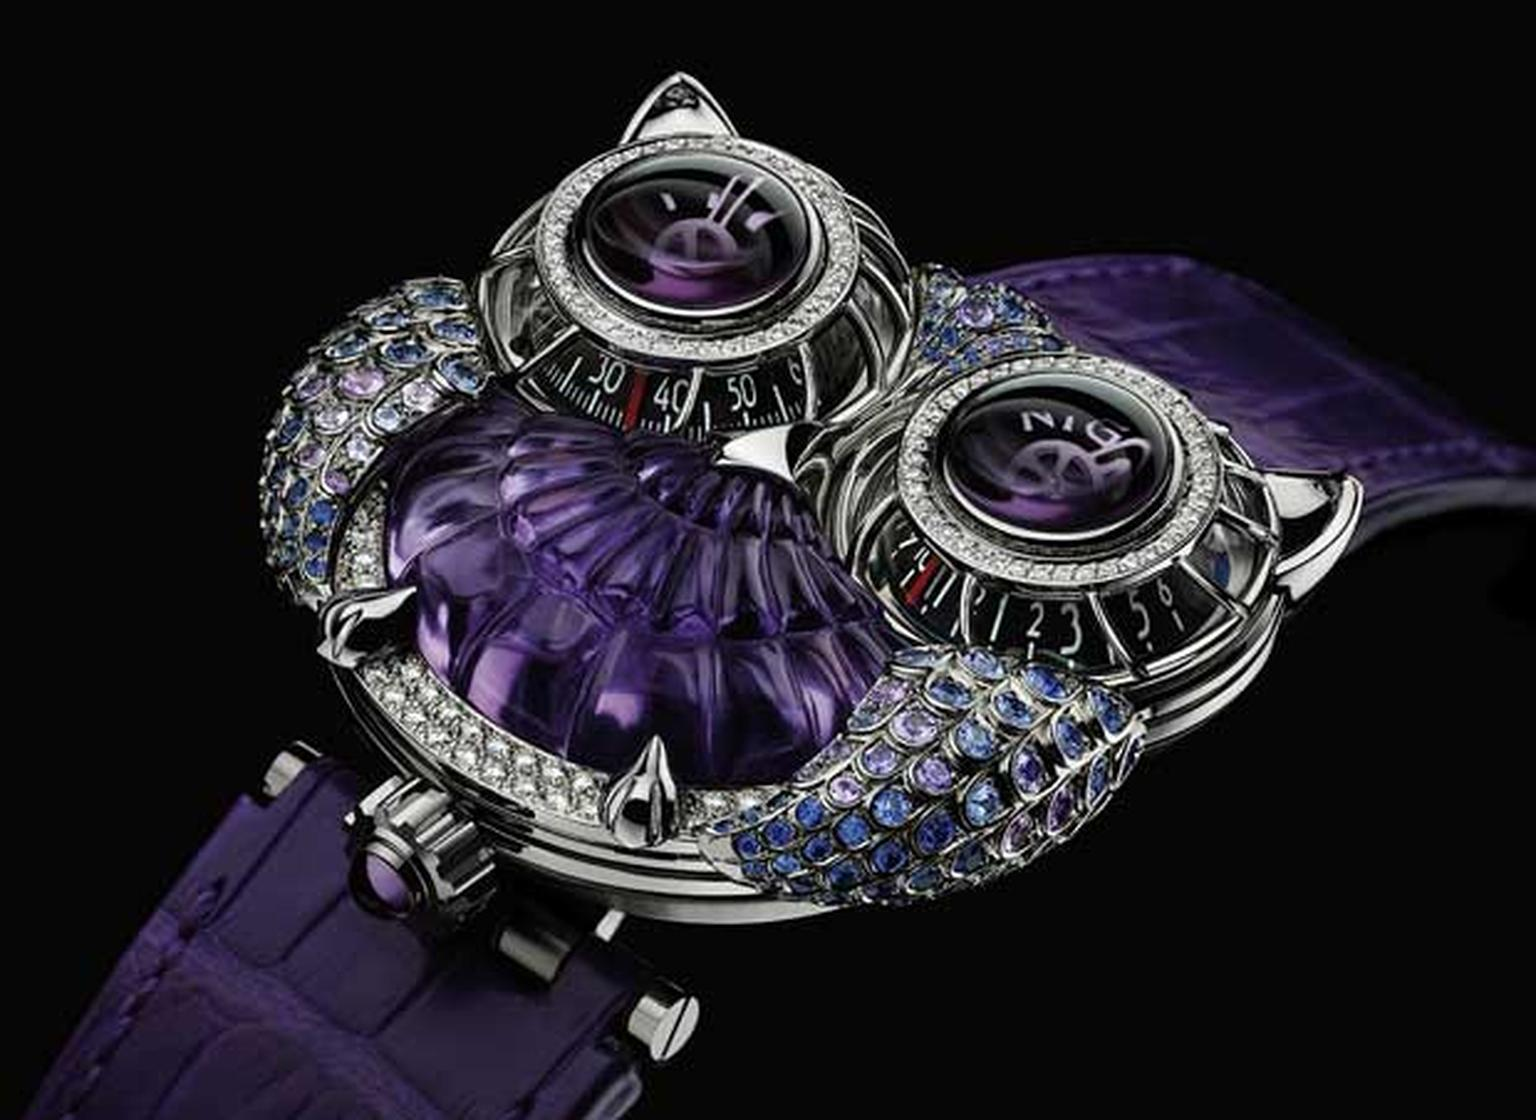 JWLRYMACHINE: a collaboration with Boucheron and Max Büsser's MB&F